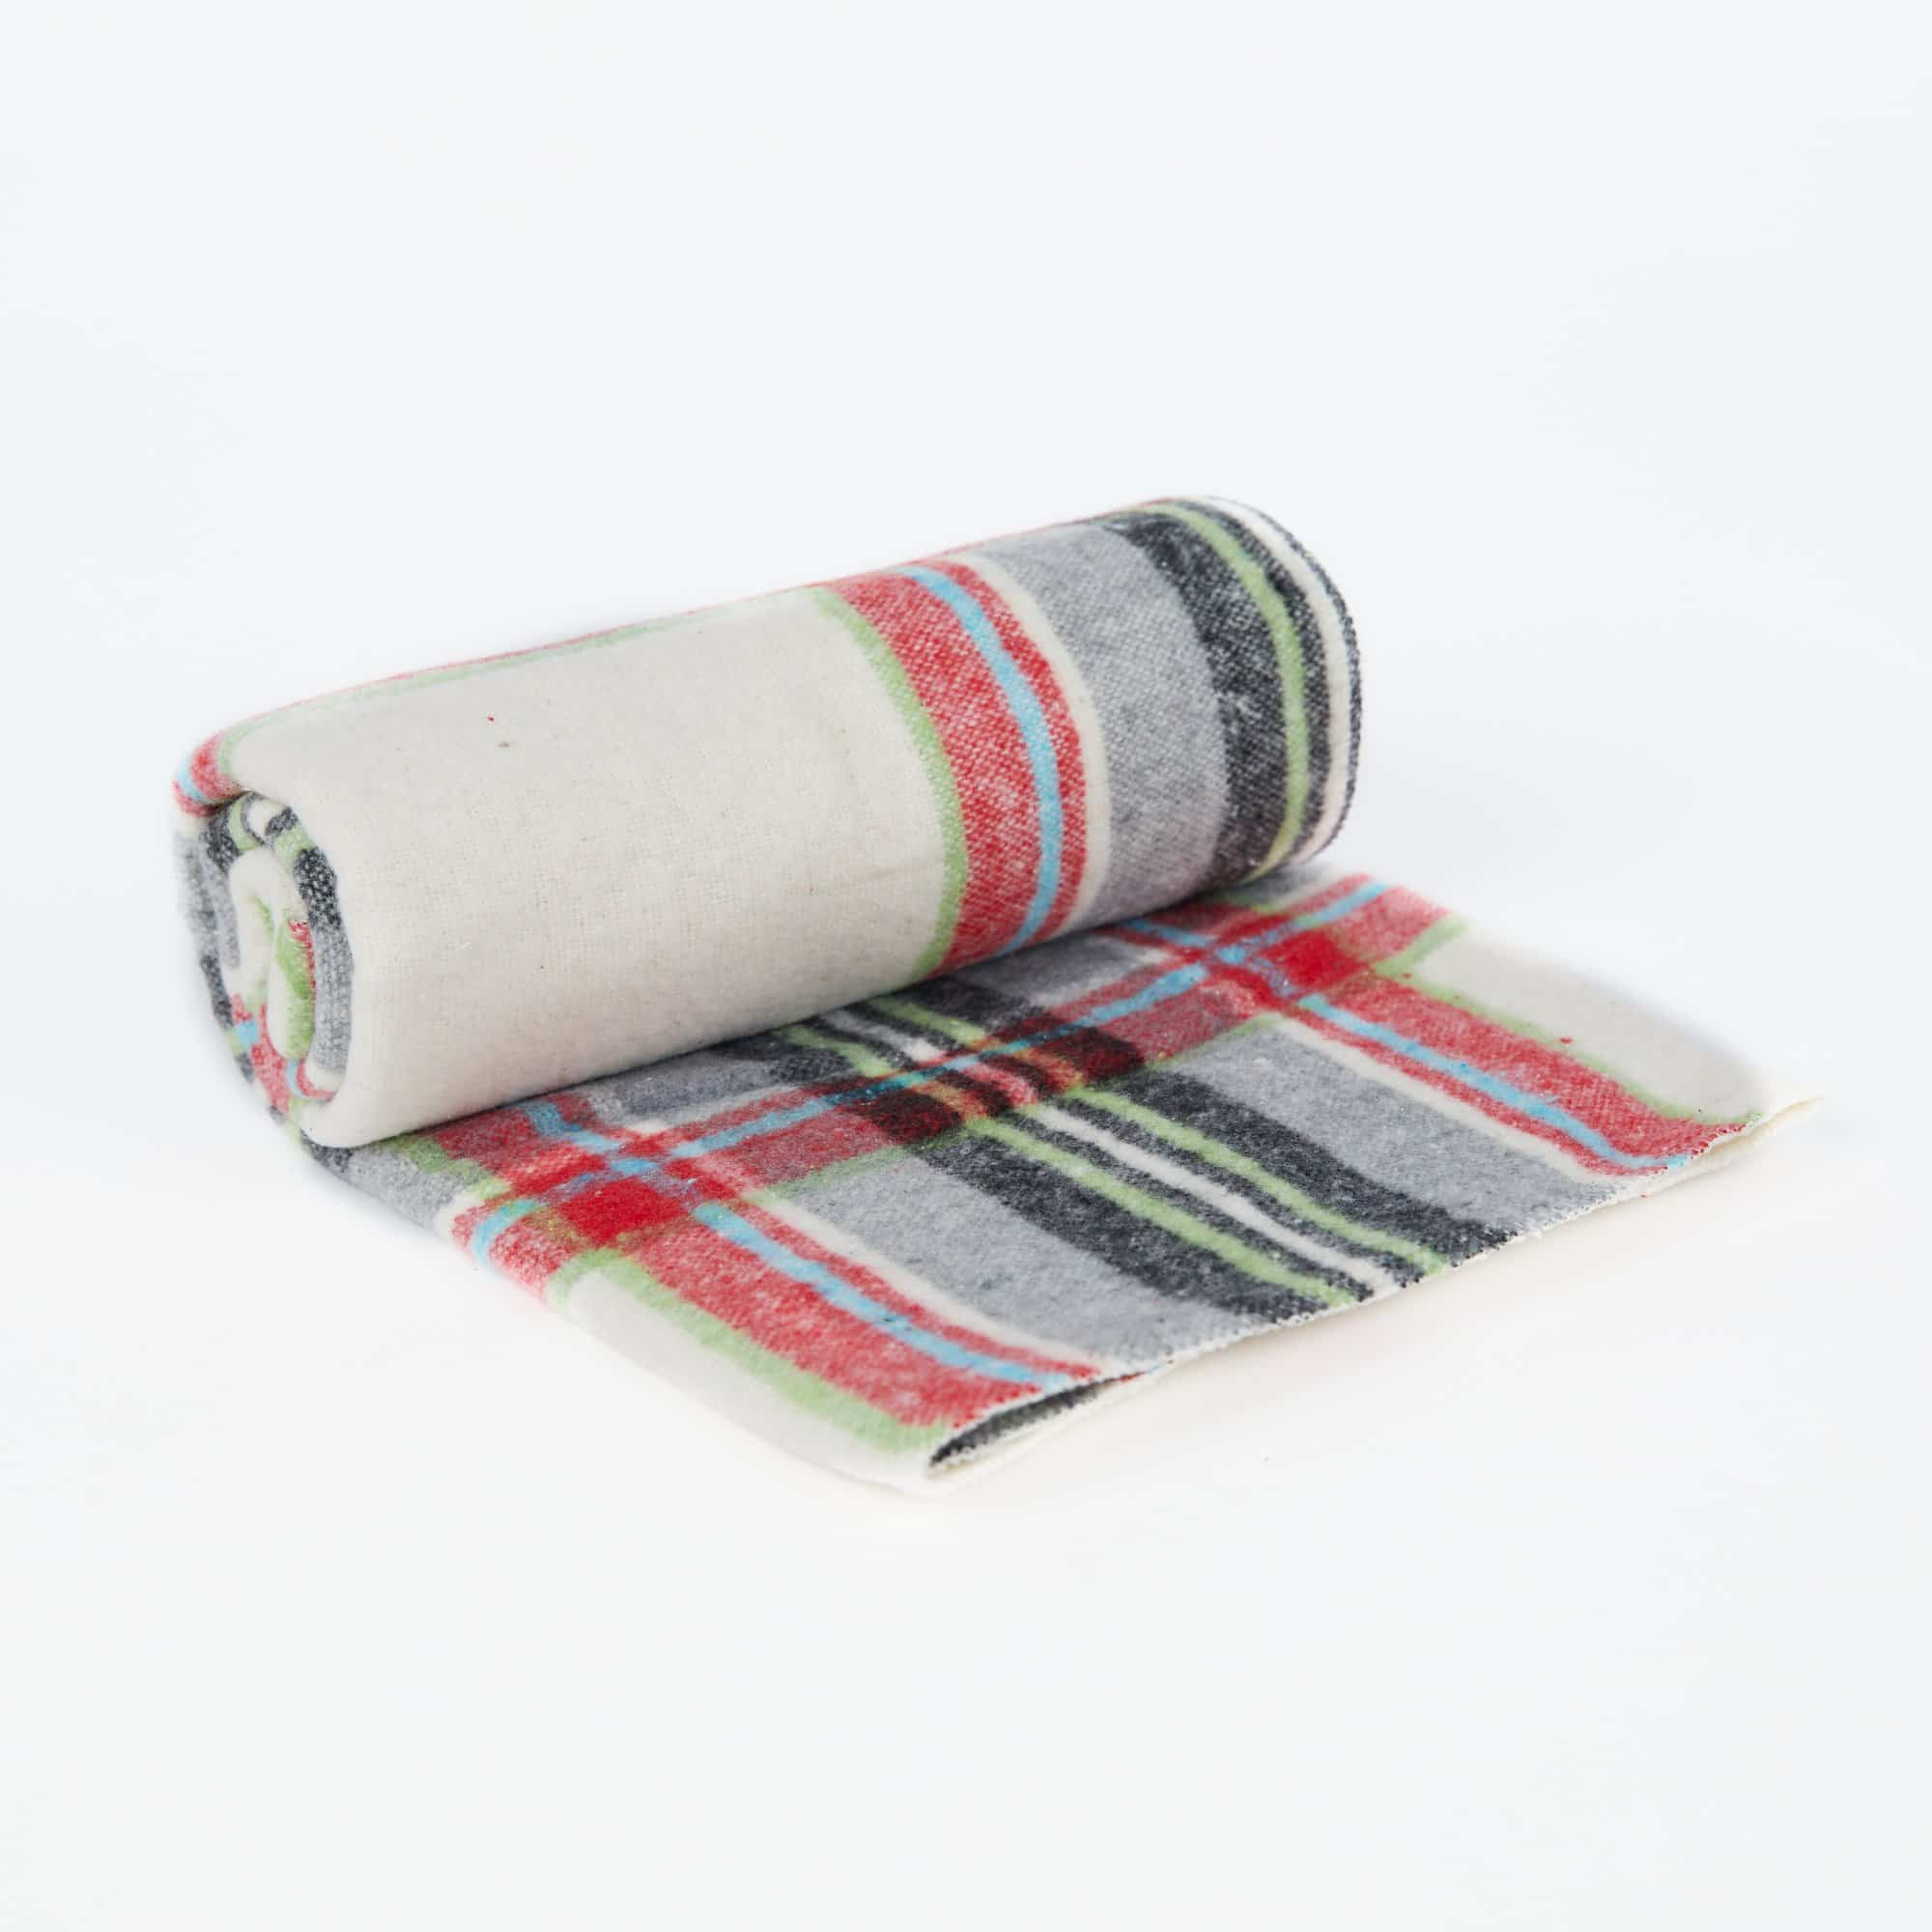 Bailey Snuggly Pet Blanket – Stripes